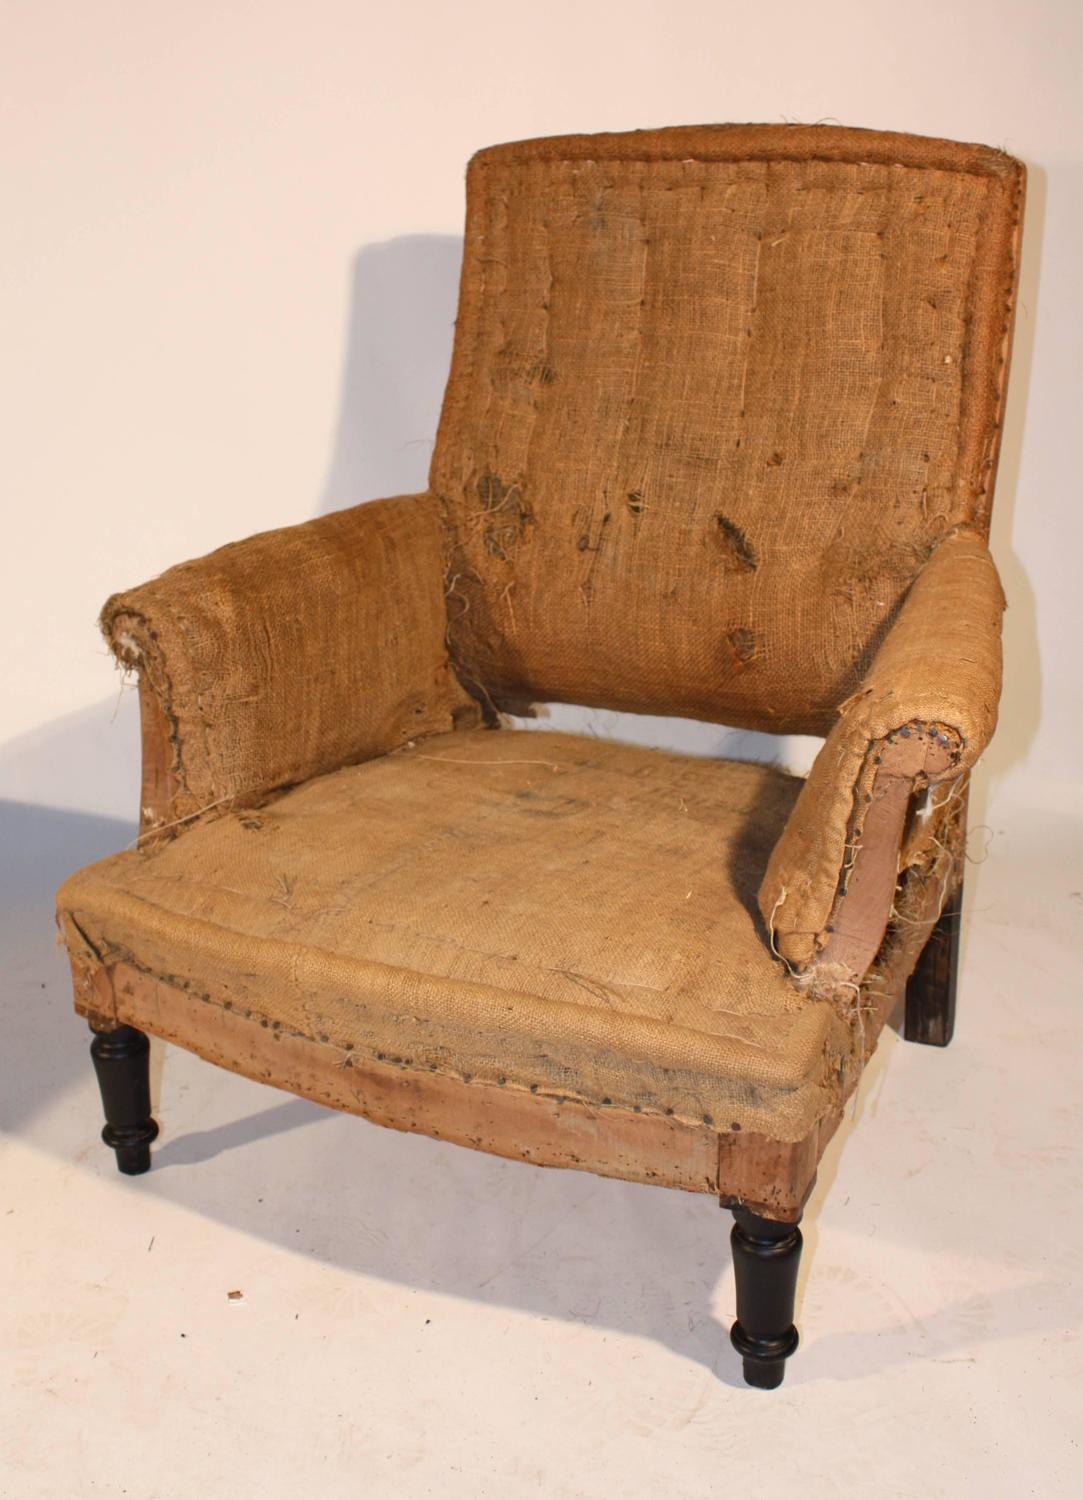 chairs and ottomans upholstered amazon chair covers bows napoleon iii club matching ottoman